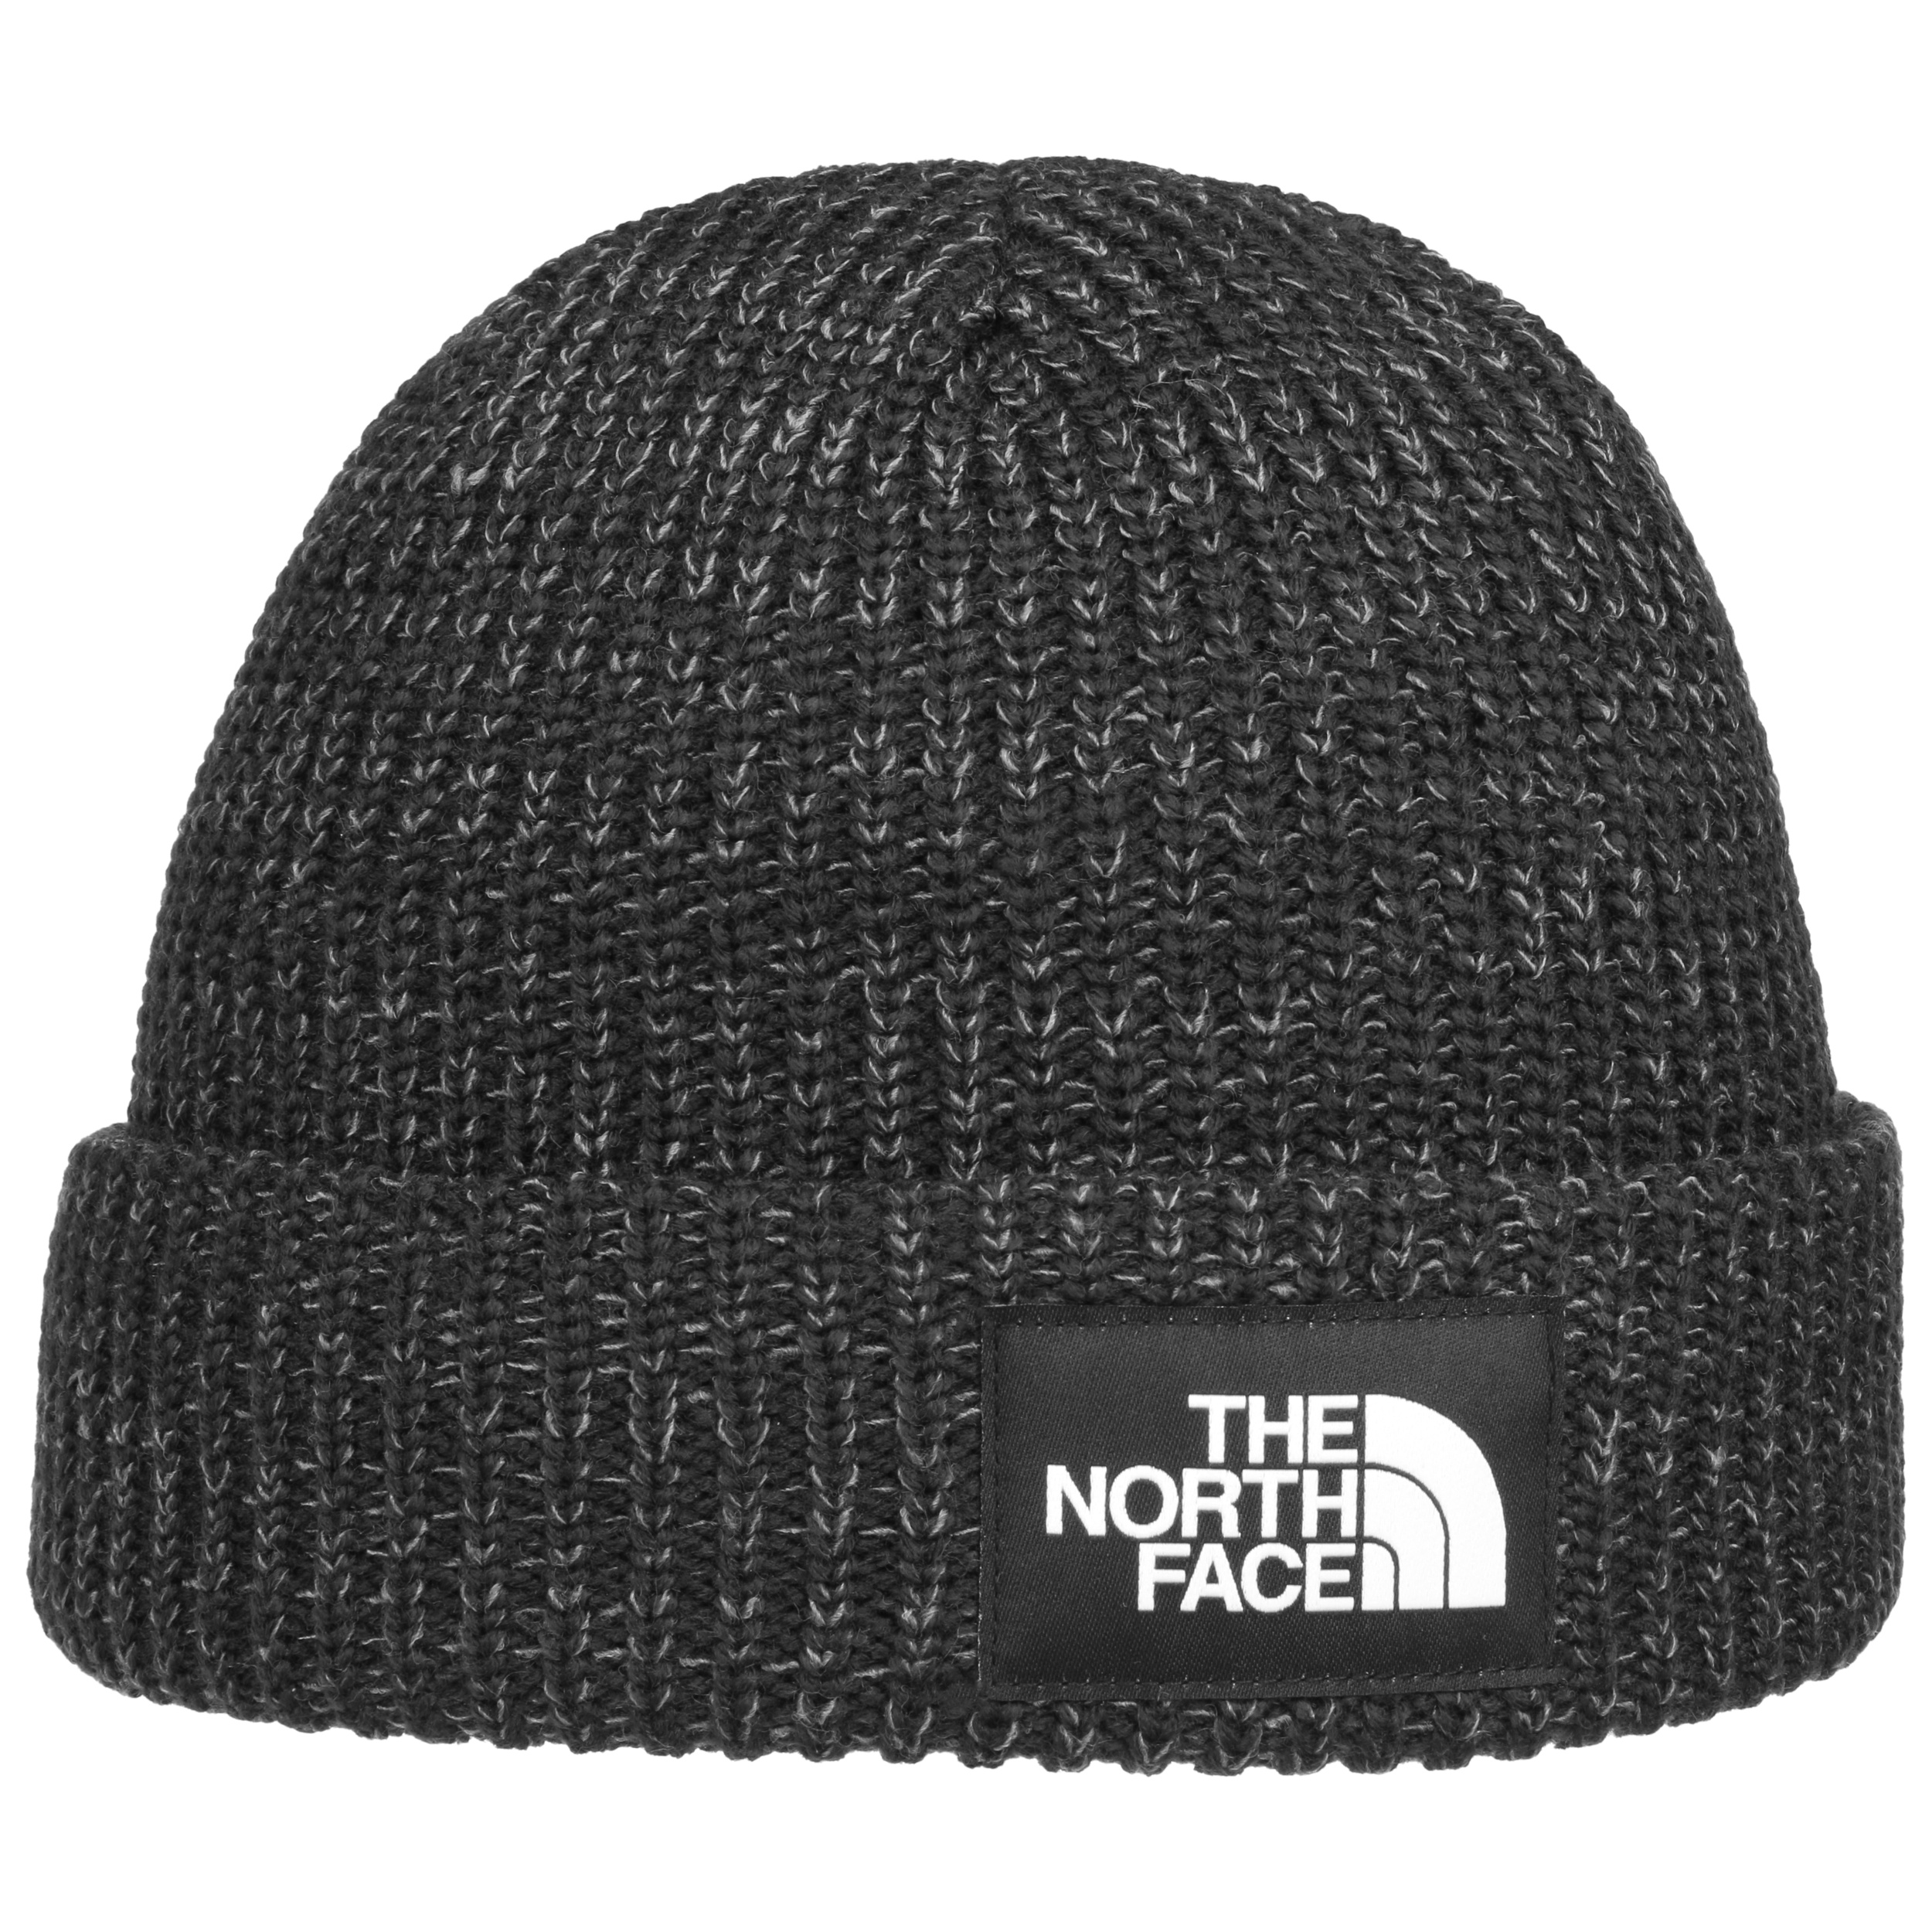 Bonnet Beanie Salty Dog by The North Face